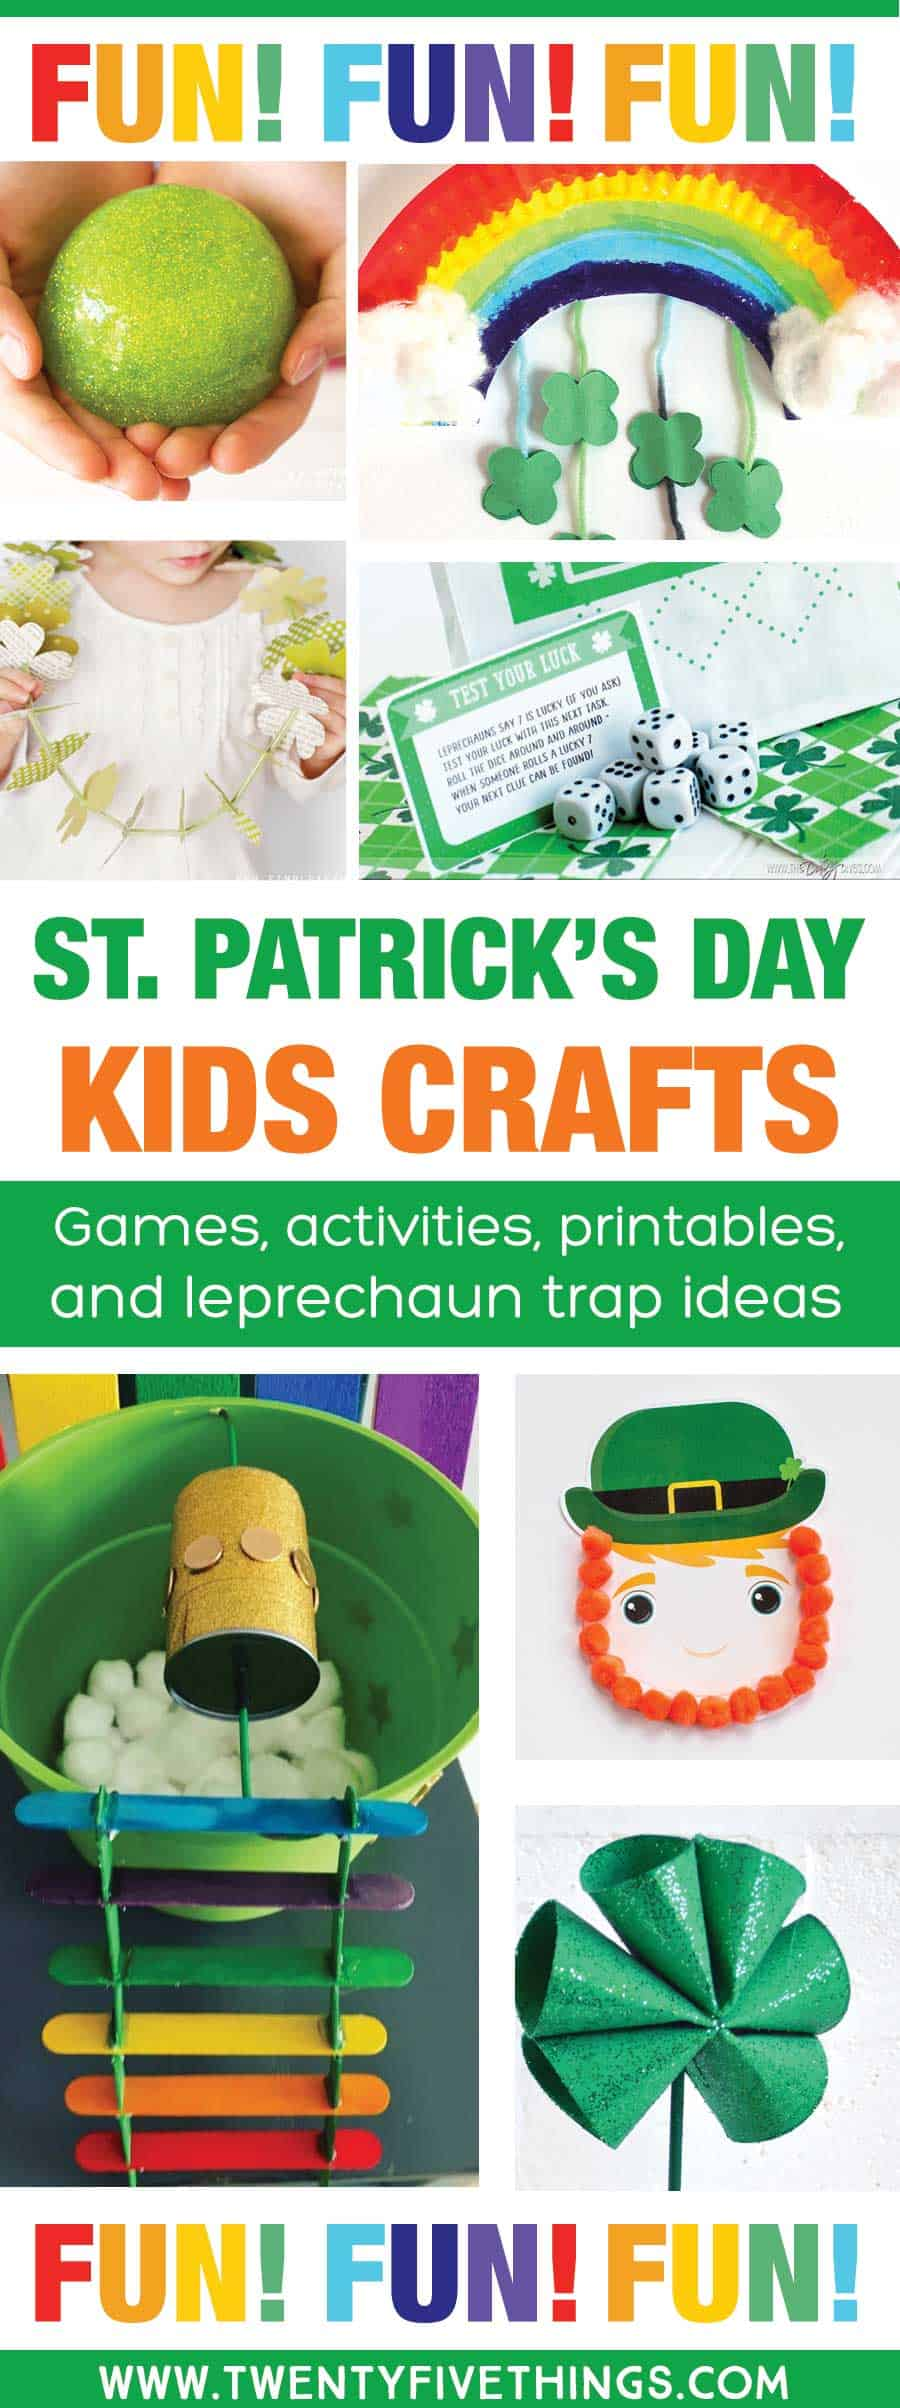 Totally fun St. Patrick's day kids crafts and acivities, with free printable games and awesome leprechaun trap ideas for kids.